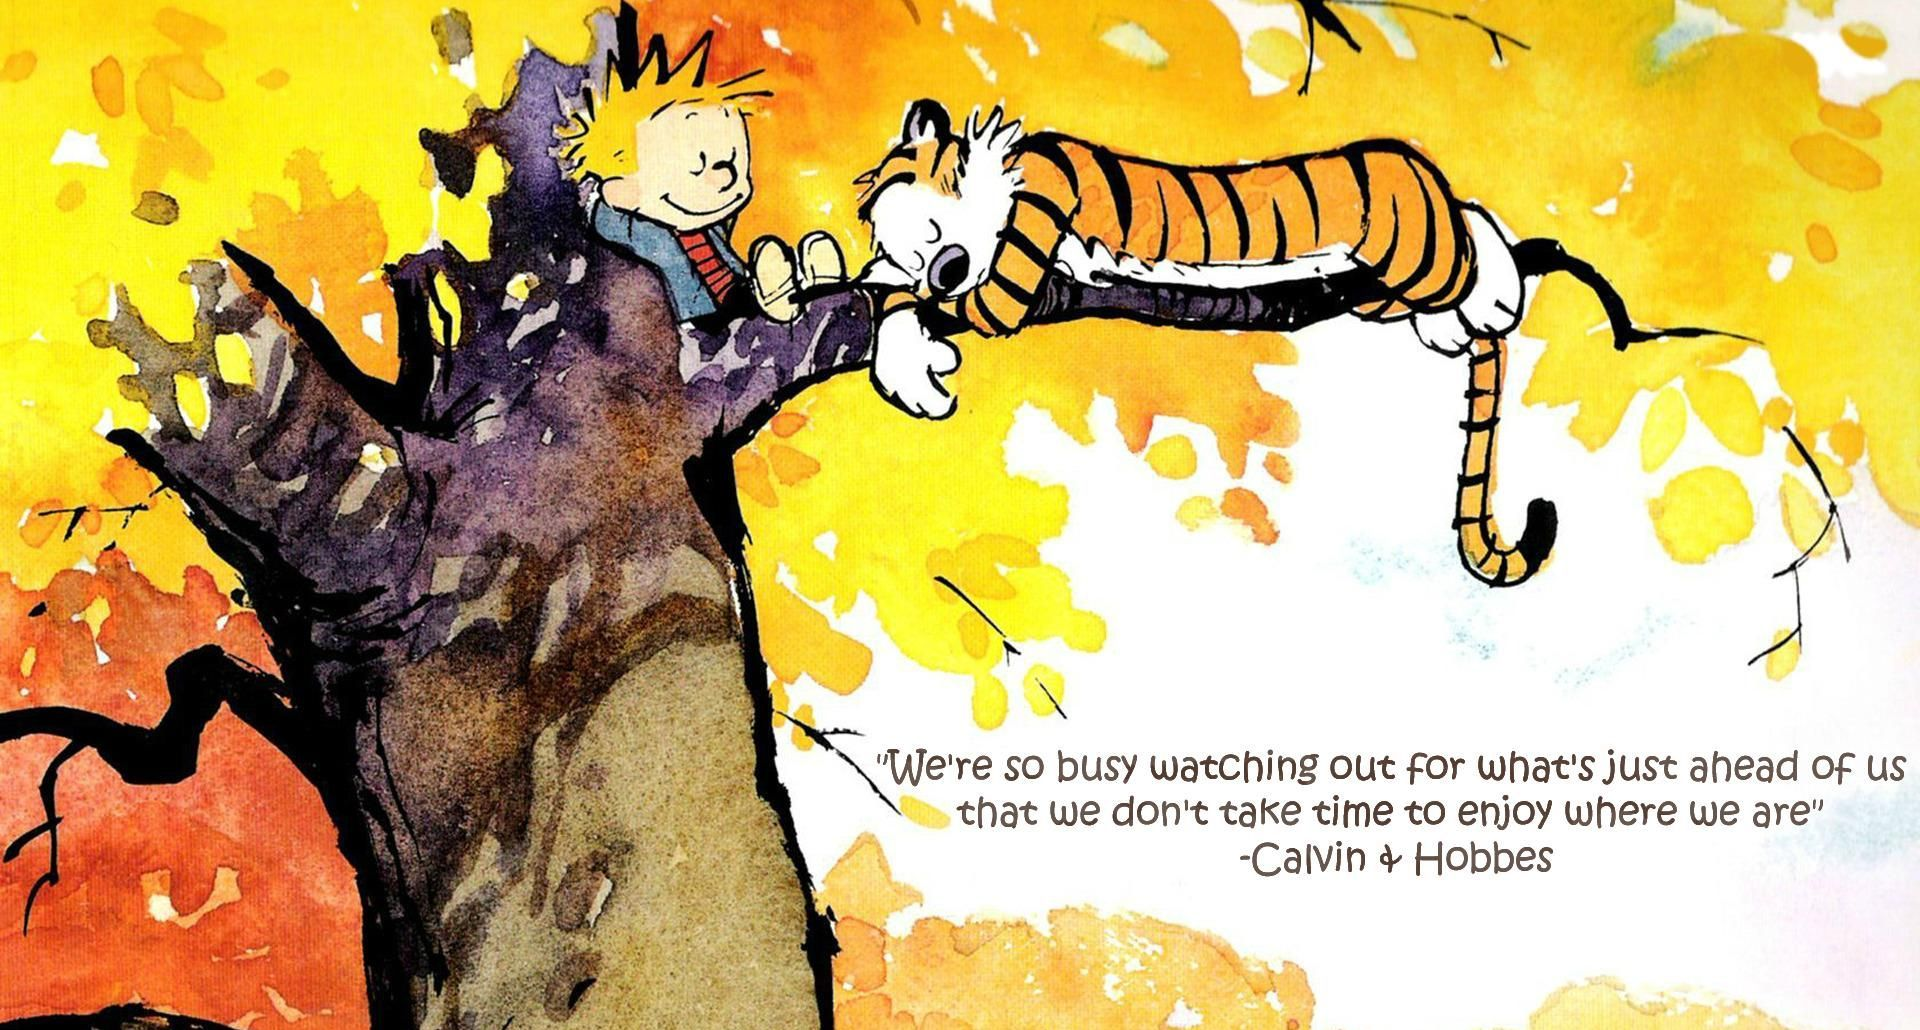 1920-x-1080-px-widescreen-calvin-and-hobbes-by-Leighton-Nash-Williams-for-TrunkWeed-wallpaper-wp340729